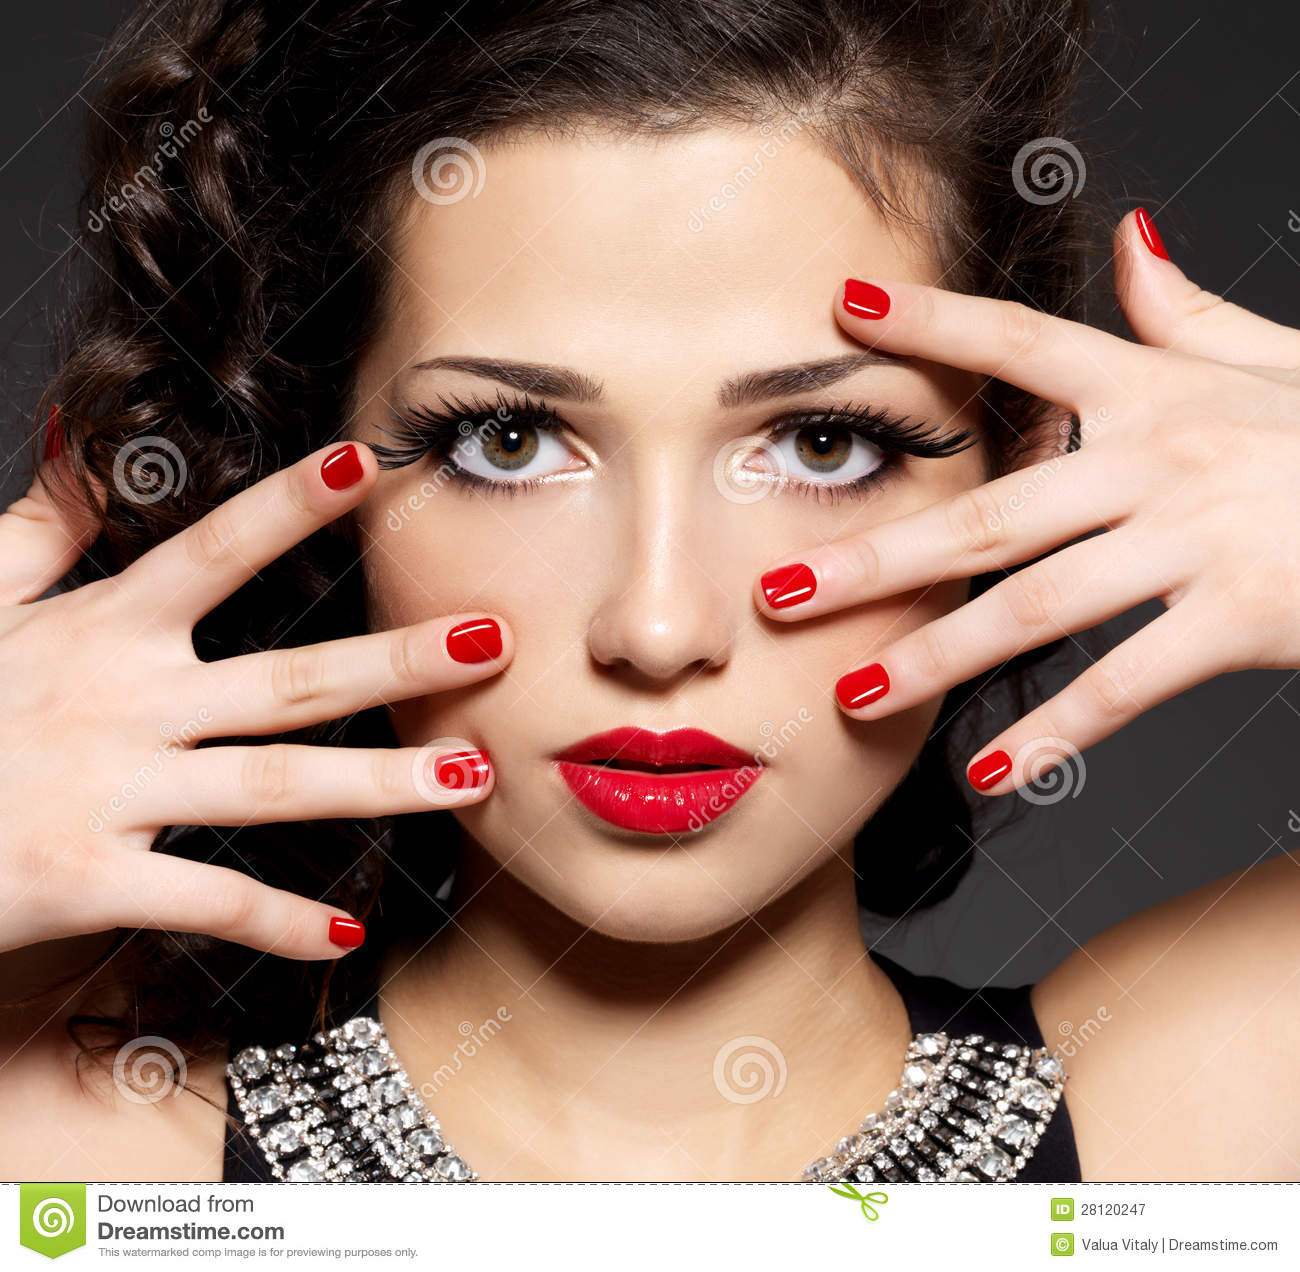 Brunette Woman With Red Nails And Makeup Stock Image - Image of hand ...